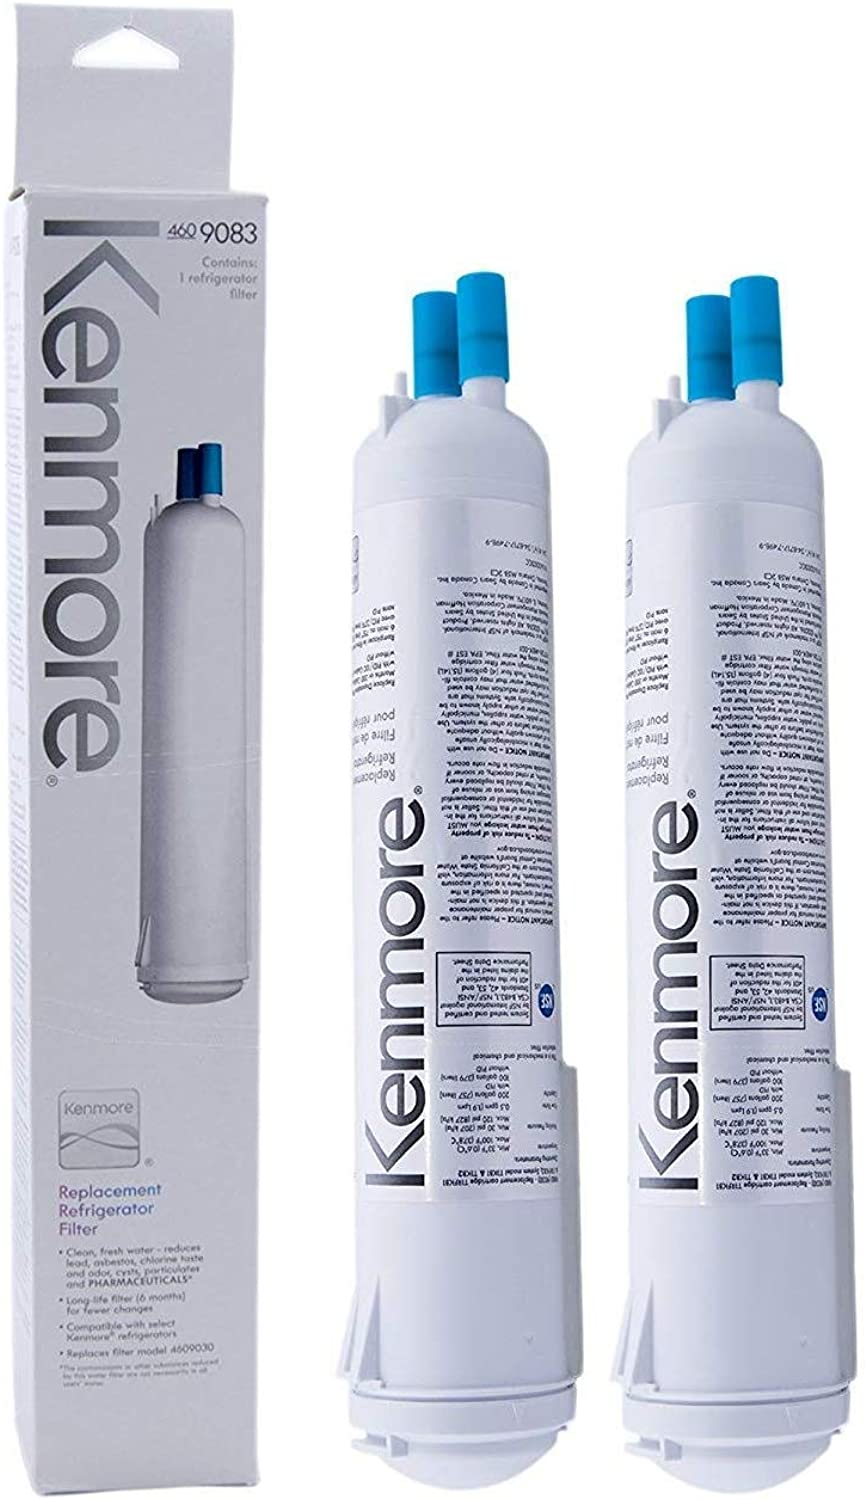 Kenmore 9083 Replacement Refrigerator Filter for Kenmore 9083 9030 - Latest Model (Pack of 2)